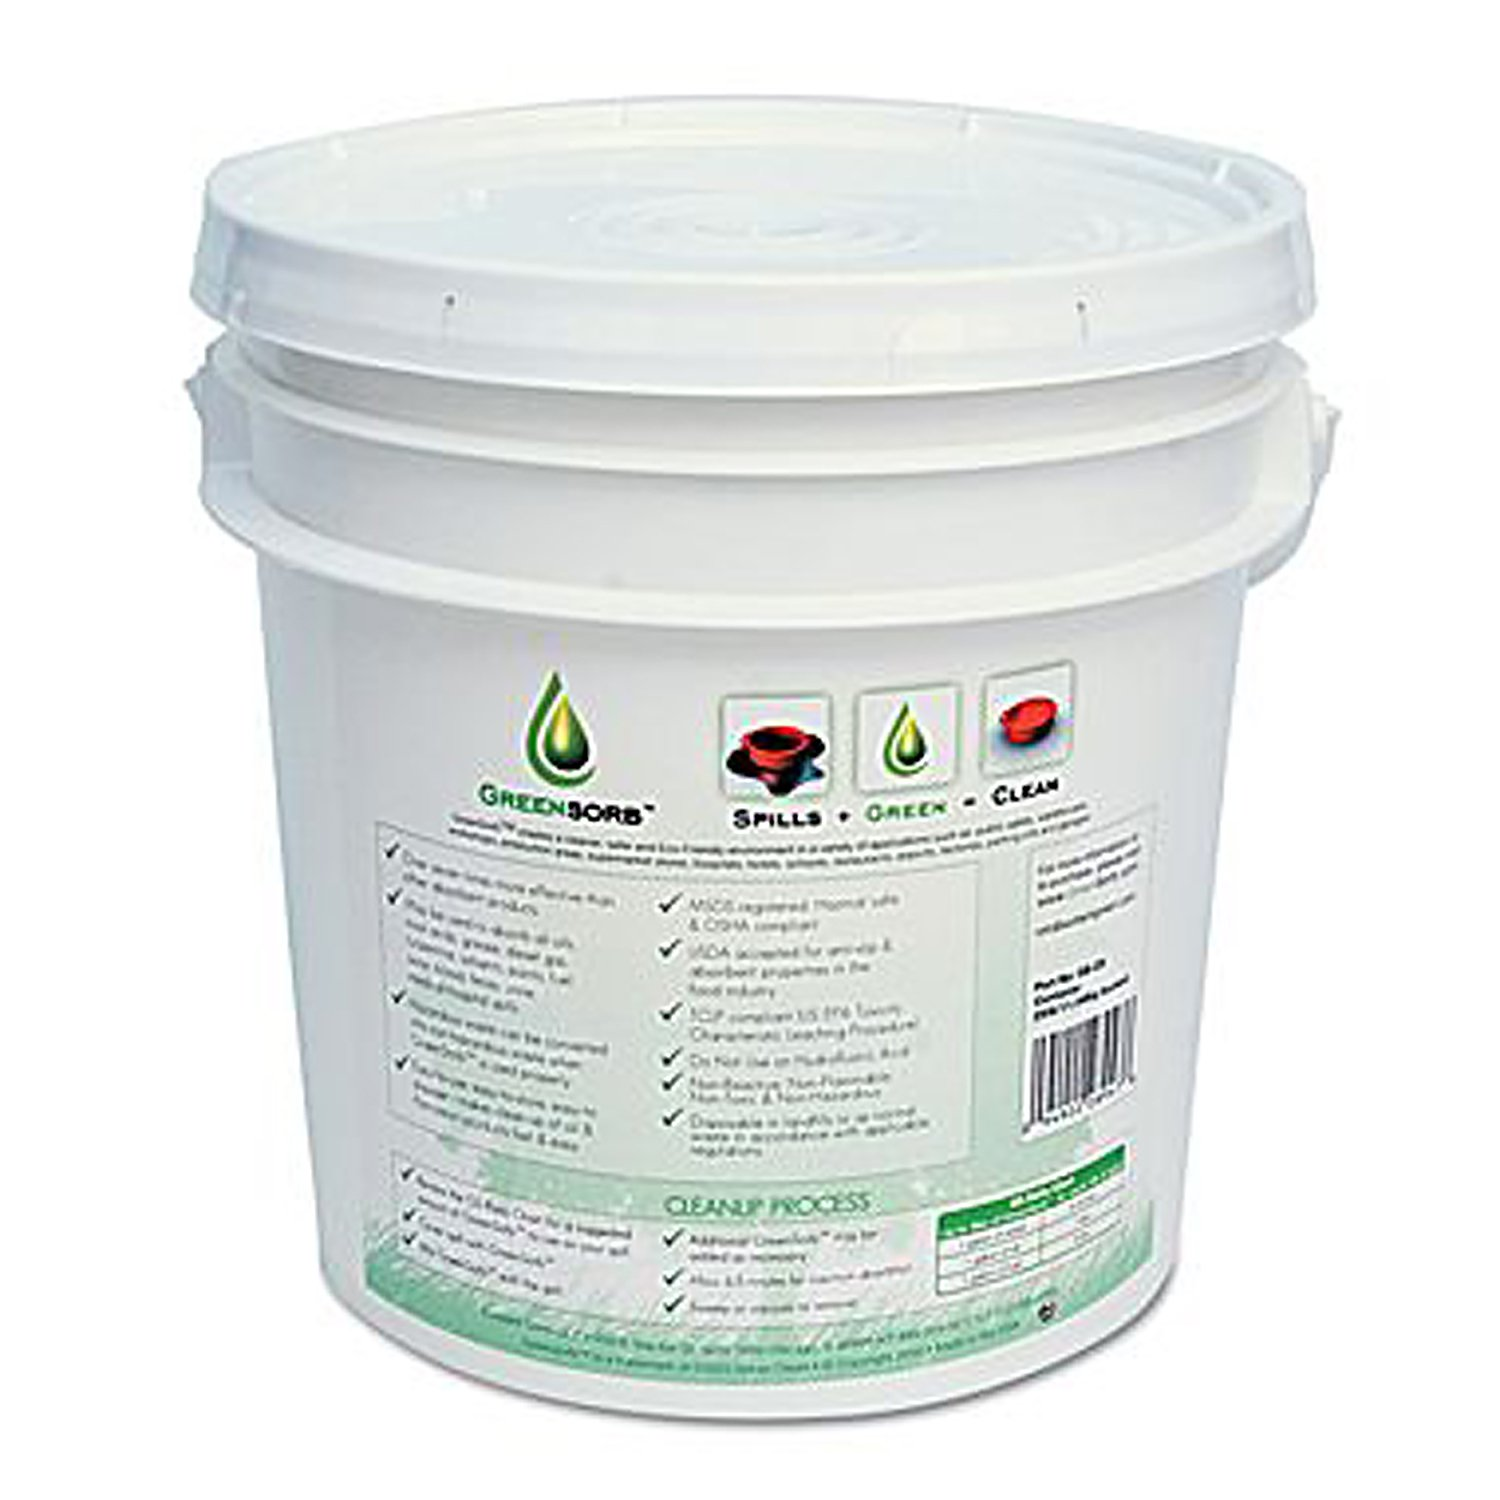 Eco-Friendly Sorbent, 10-lb. Bucket (並行輸入品) B006CTB6QK